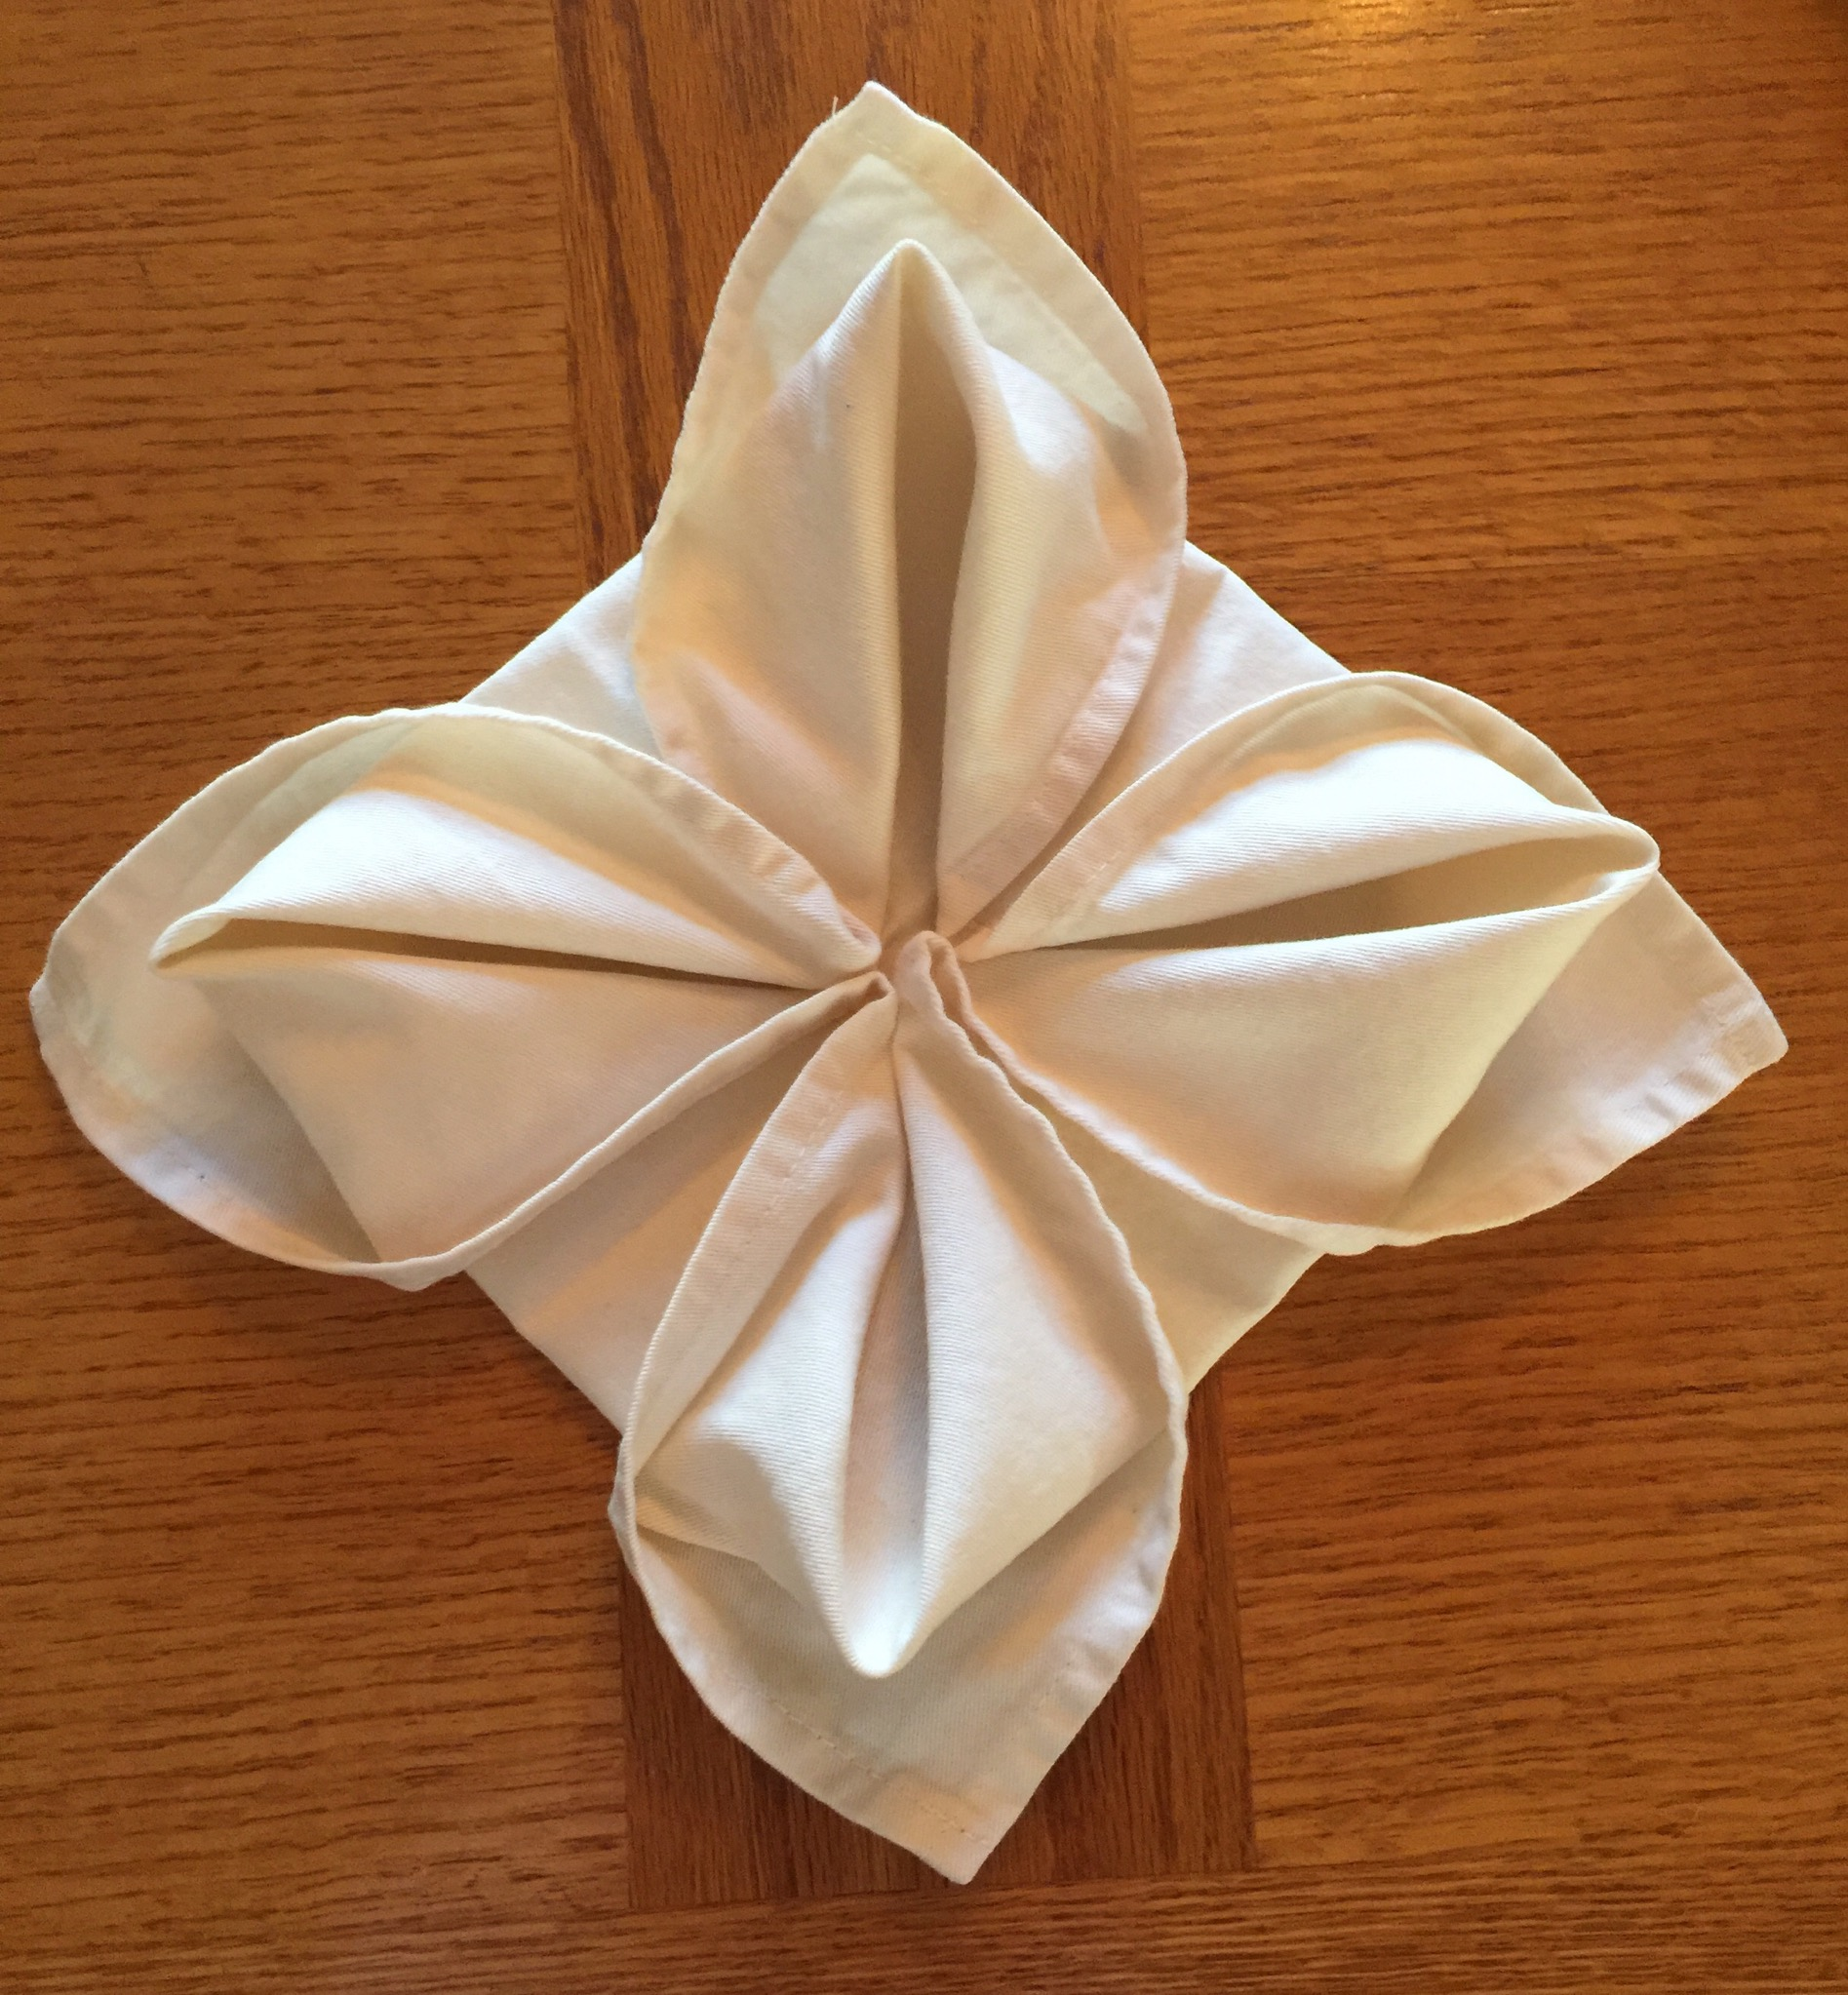 Napkin Folding Flower 9 Steps With Pictures Instructables